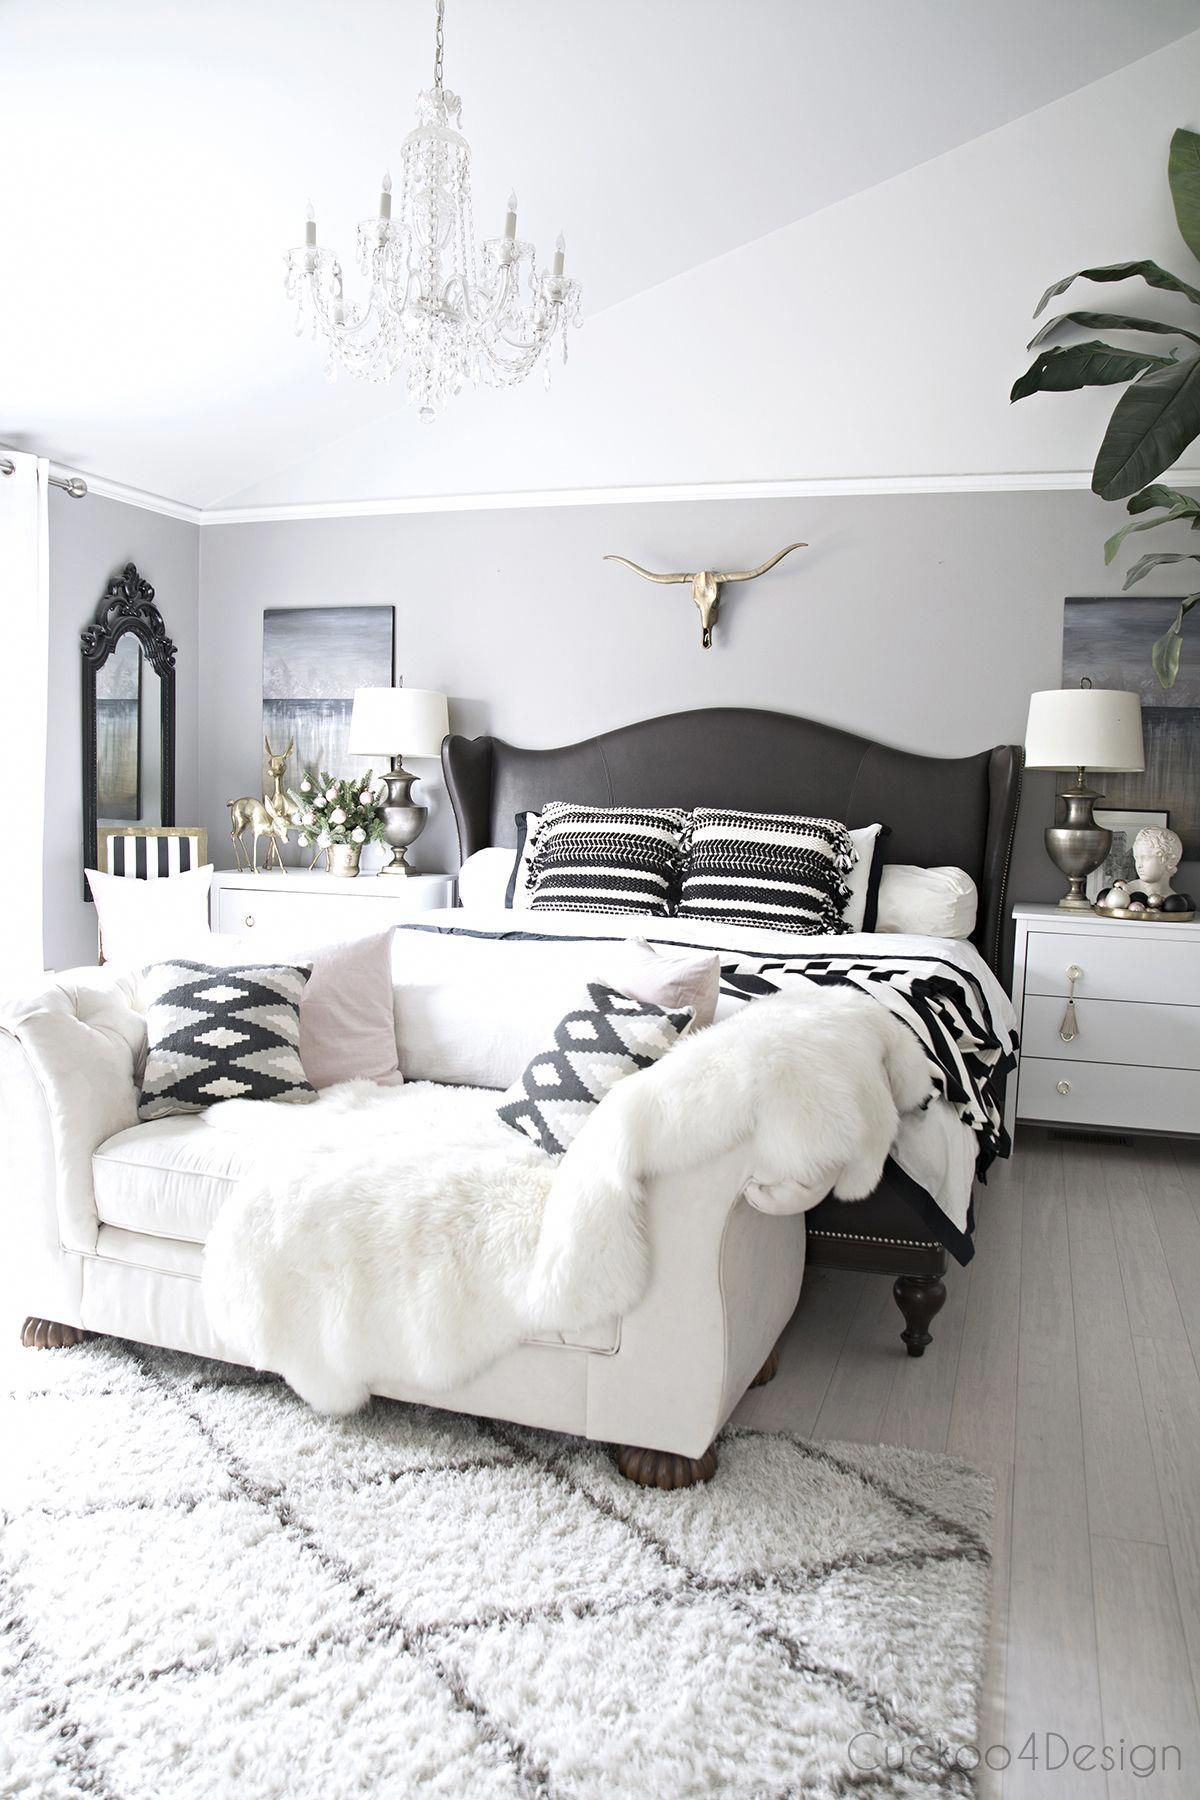 beautiful serene bedroom with leather wingback bed | brass longhorn skull | cathedral ceilings | crystal chandelier | blush and black and white accents #whitebedroom #graybedroomwithpopofcolor beautiful serene bedroom with leather wingback bed | brass longhorn skull | cathedral ceilings | crystal chandelier | blush and black and white accents #whitebedroom #graybedroomwithpopofcolor